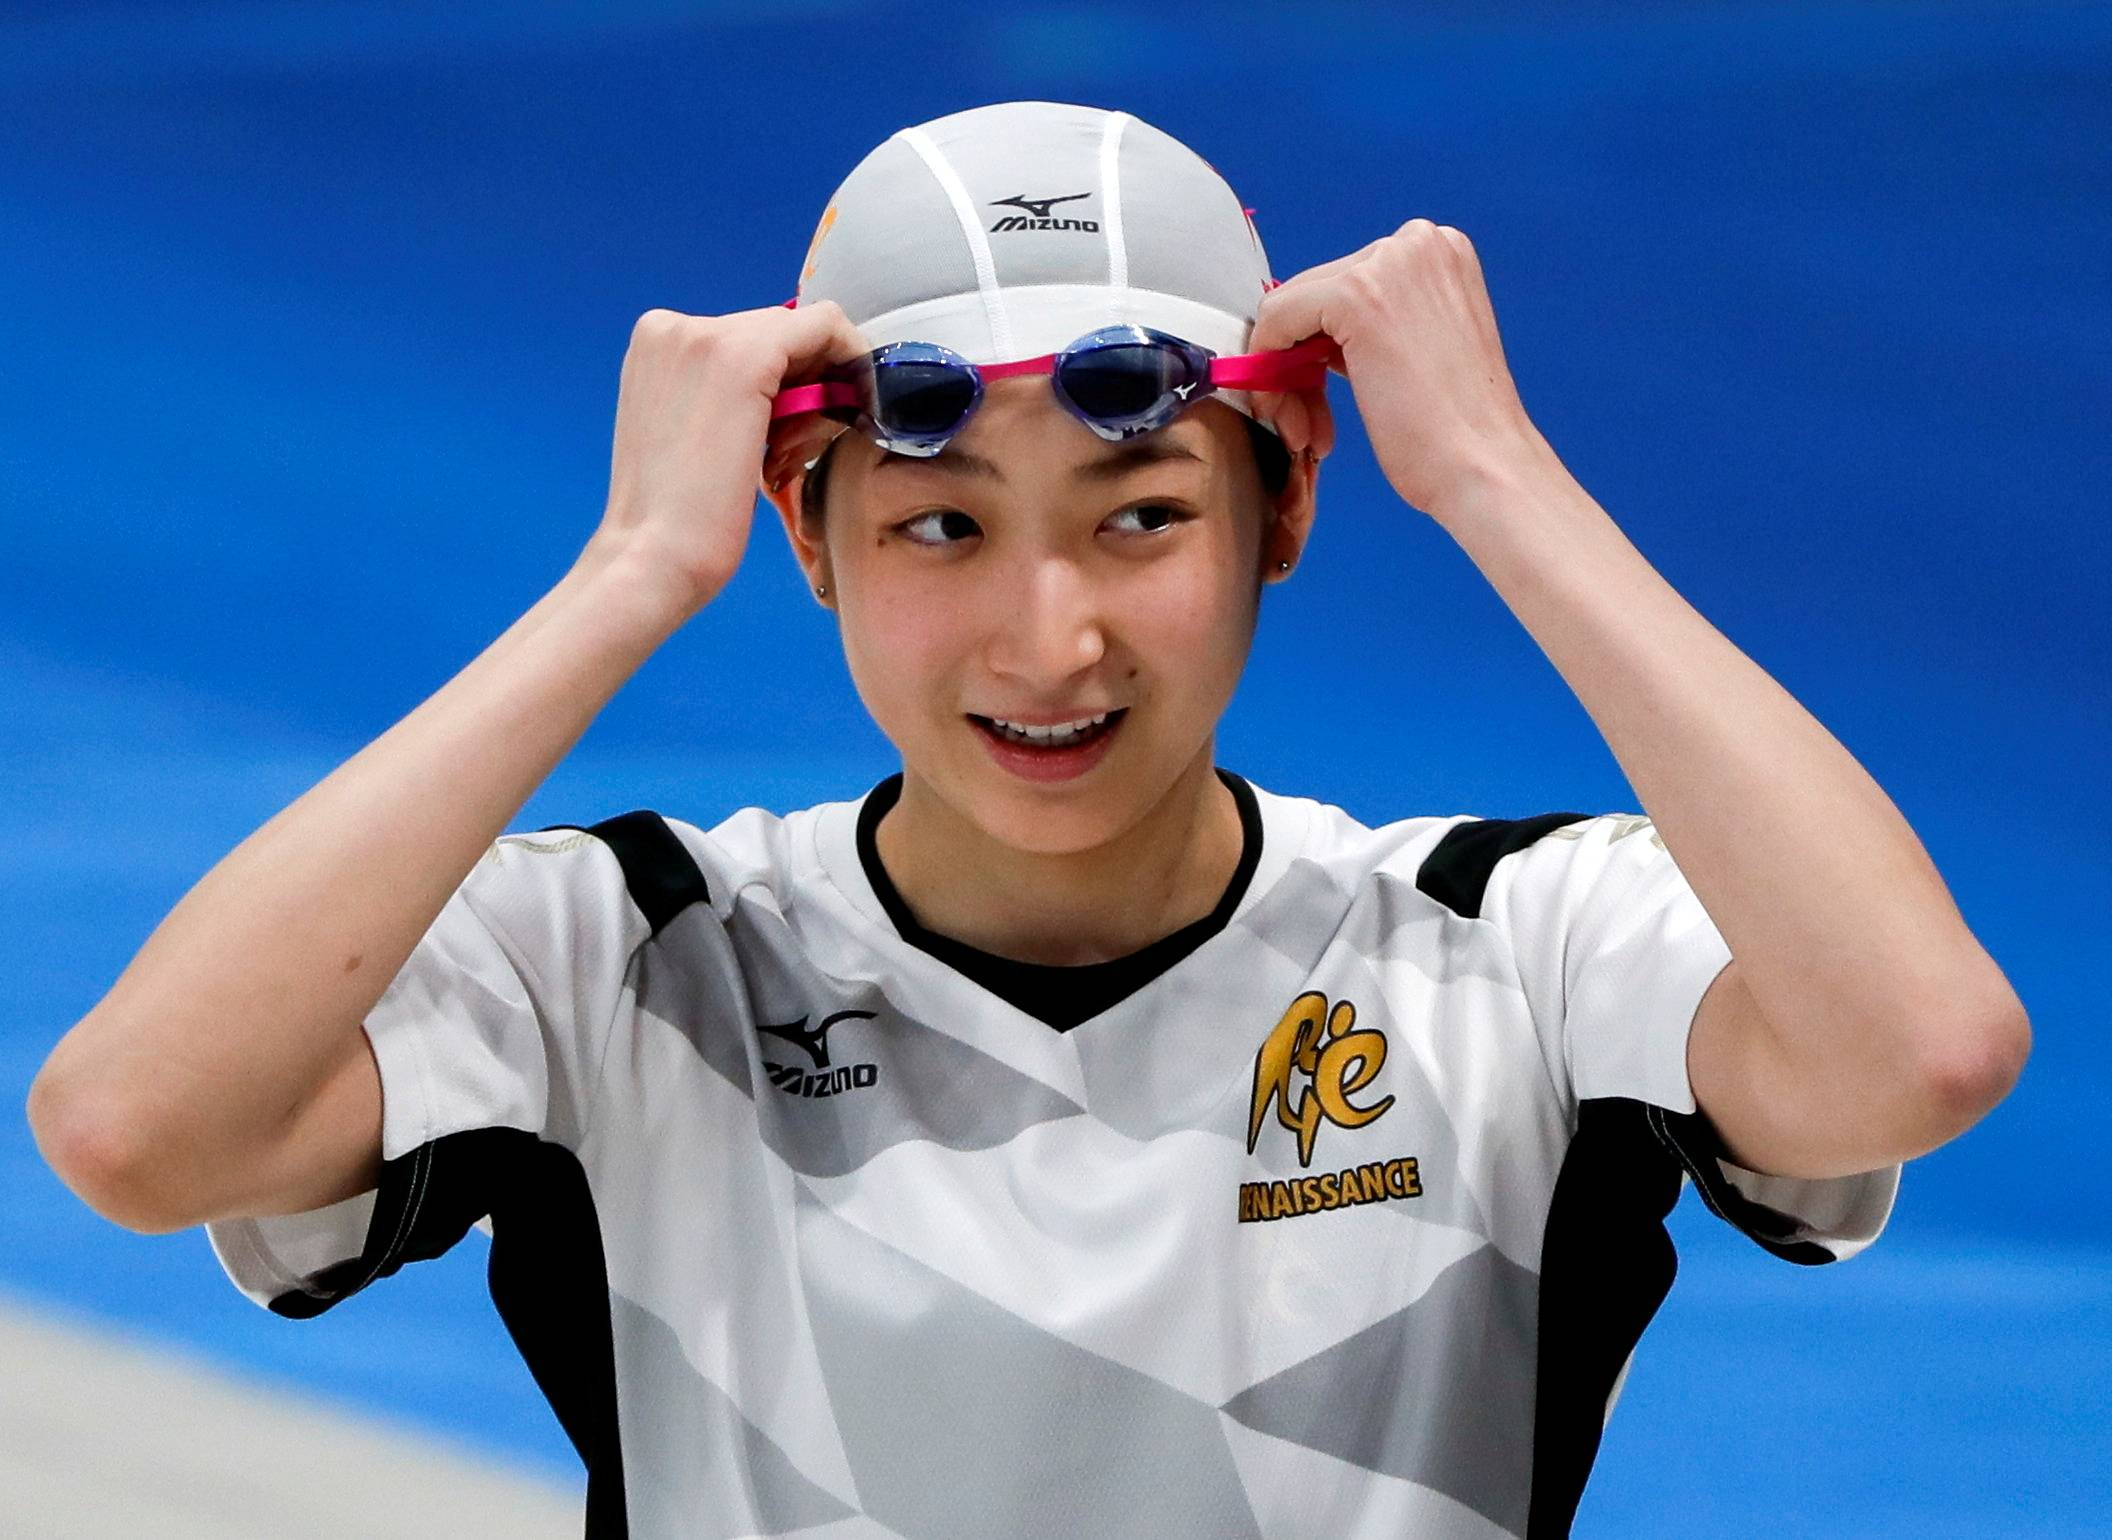 Swimming star Rikako Ikee revealed in May that she had received messages on her social media accounts telling her to pull out of the games. | REUTERS